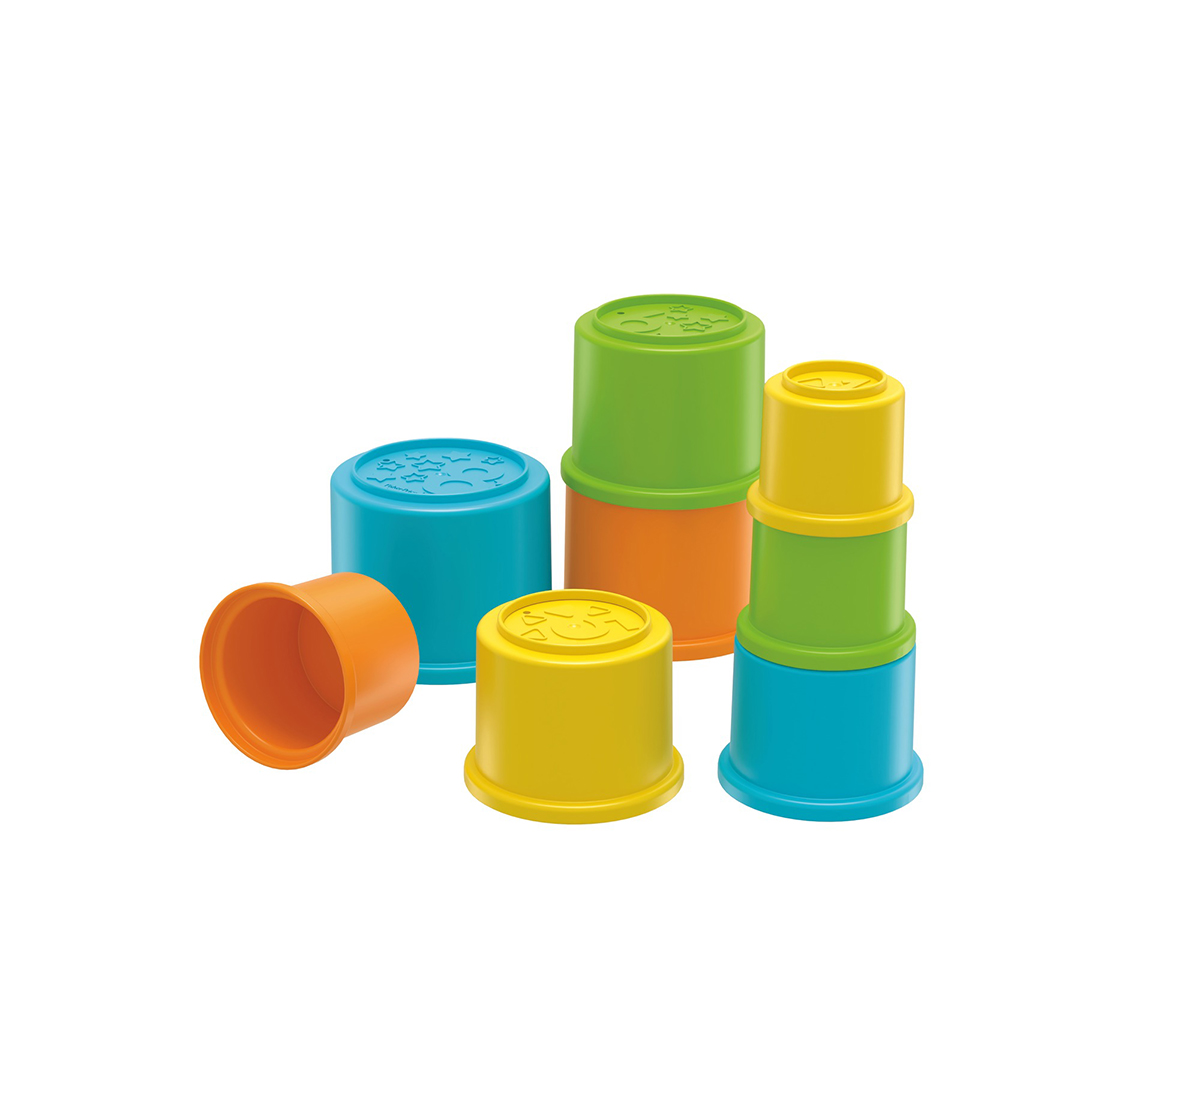 Fisher-Price | Fisher Price Stacking Cups Activity Toys for Kids age 6M+